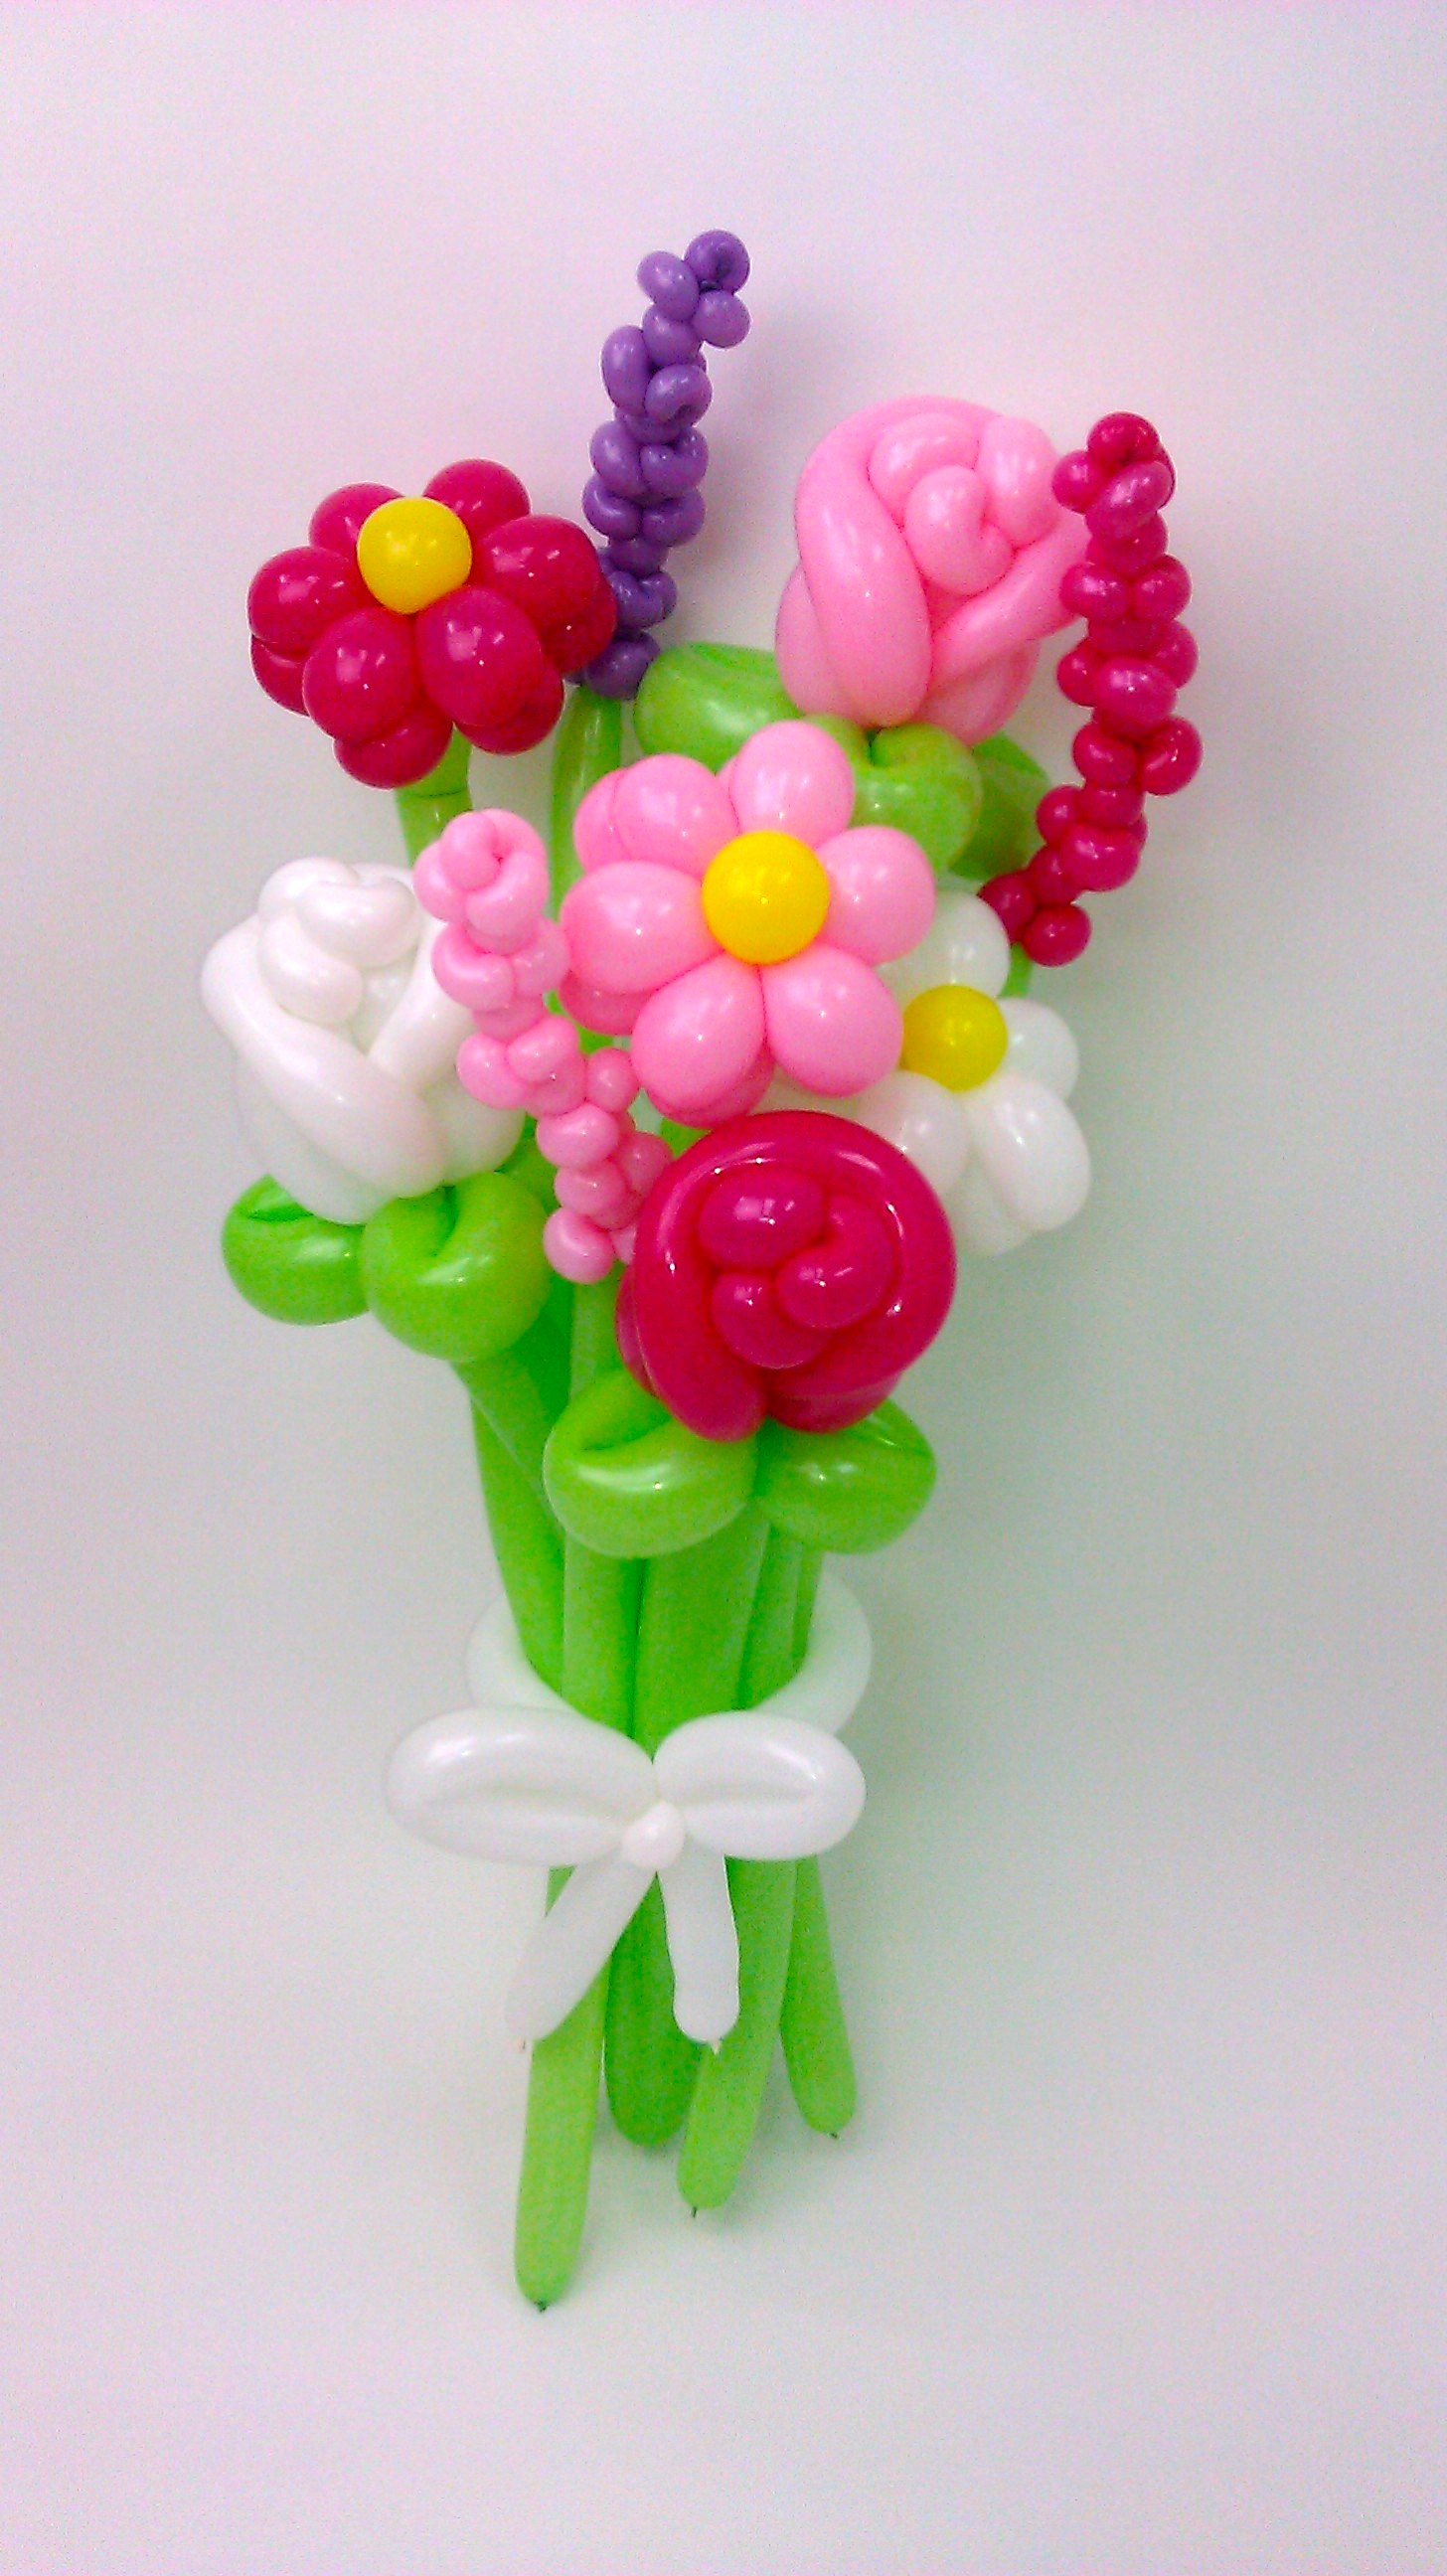 Daisy rose stalk flower balloon bouquet balloon animals palm beach 4500 izmirmasajfo Image collections